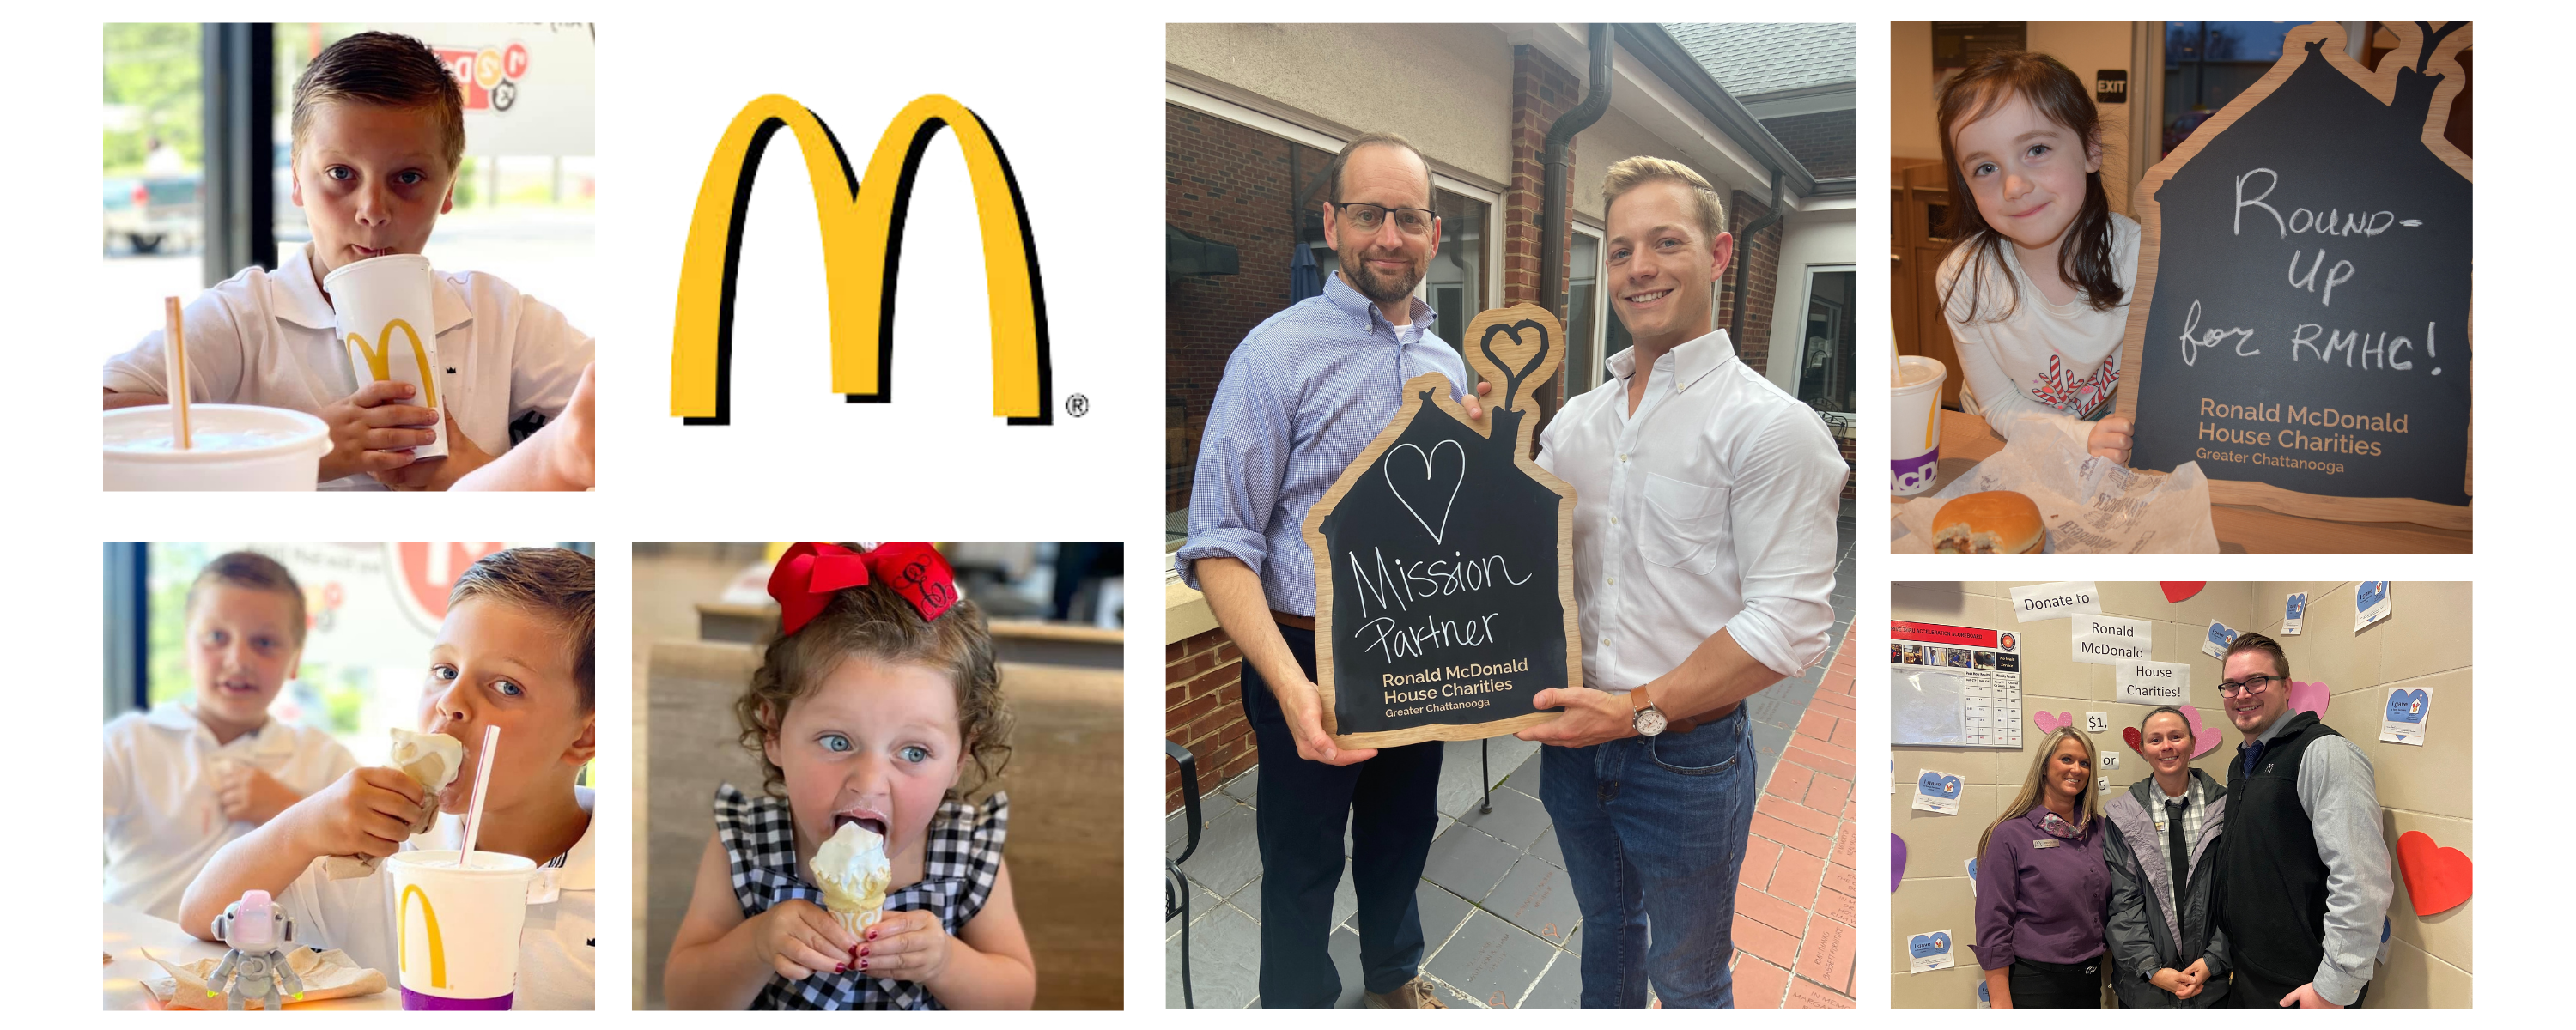 Kids at McDonald's eating and drinking, McDonald's Owner/Operators holding up a mission partner sign, McDonald's Managers in a photo capture of a donation campaign